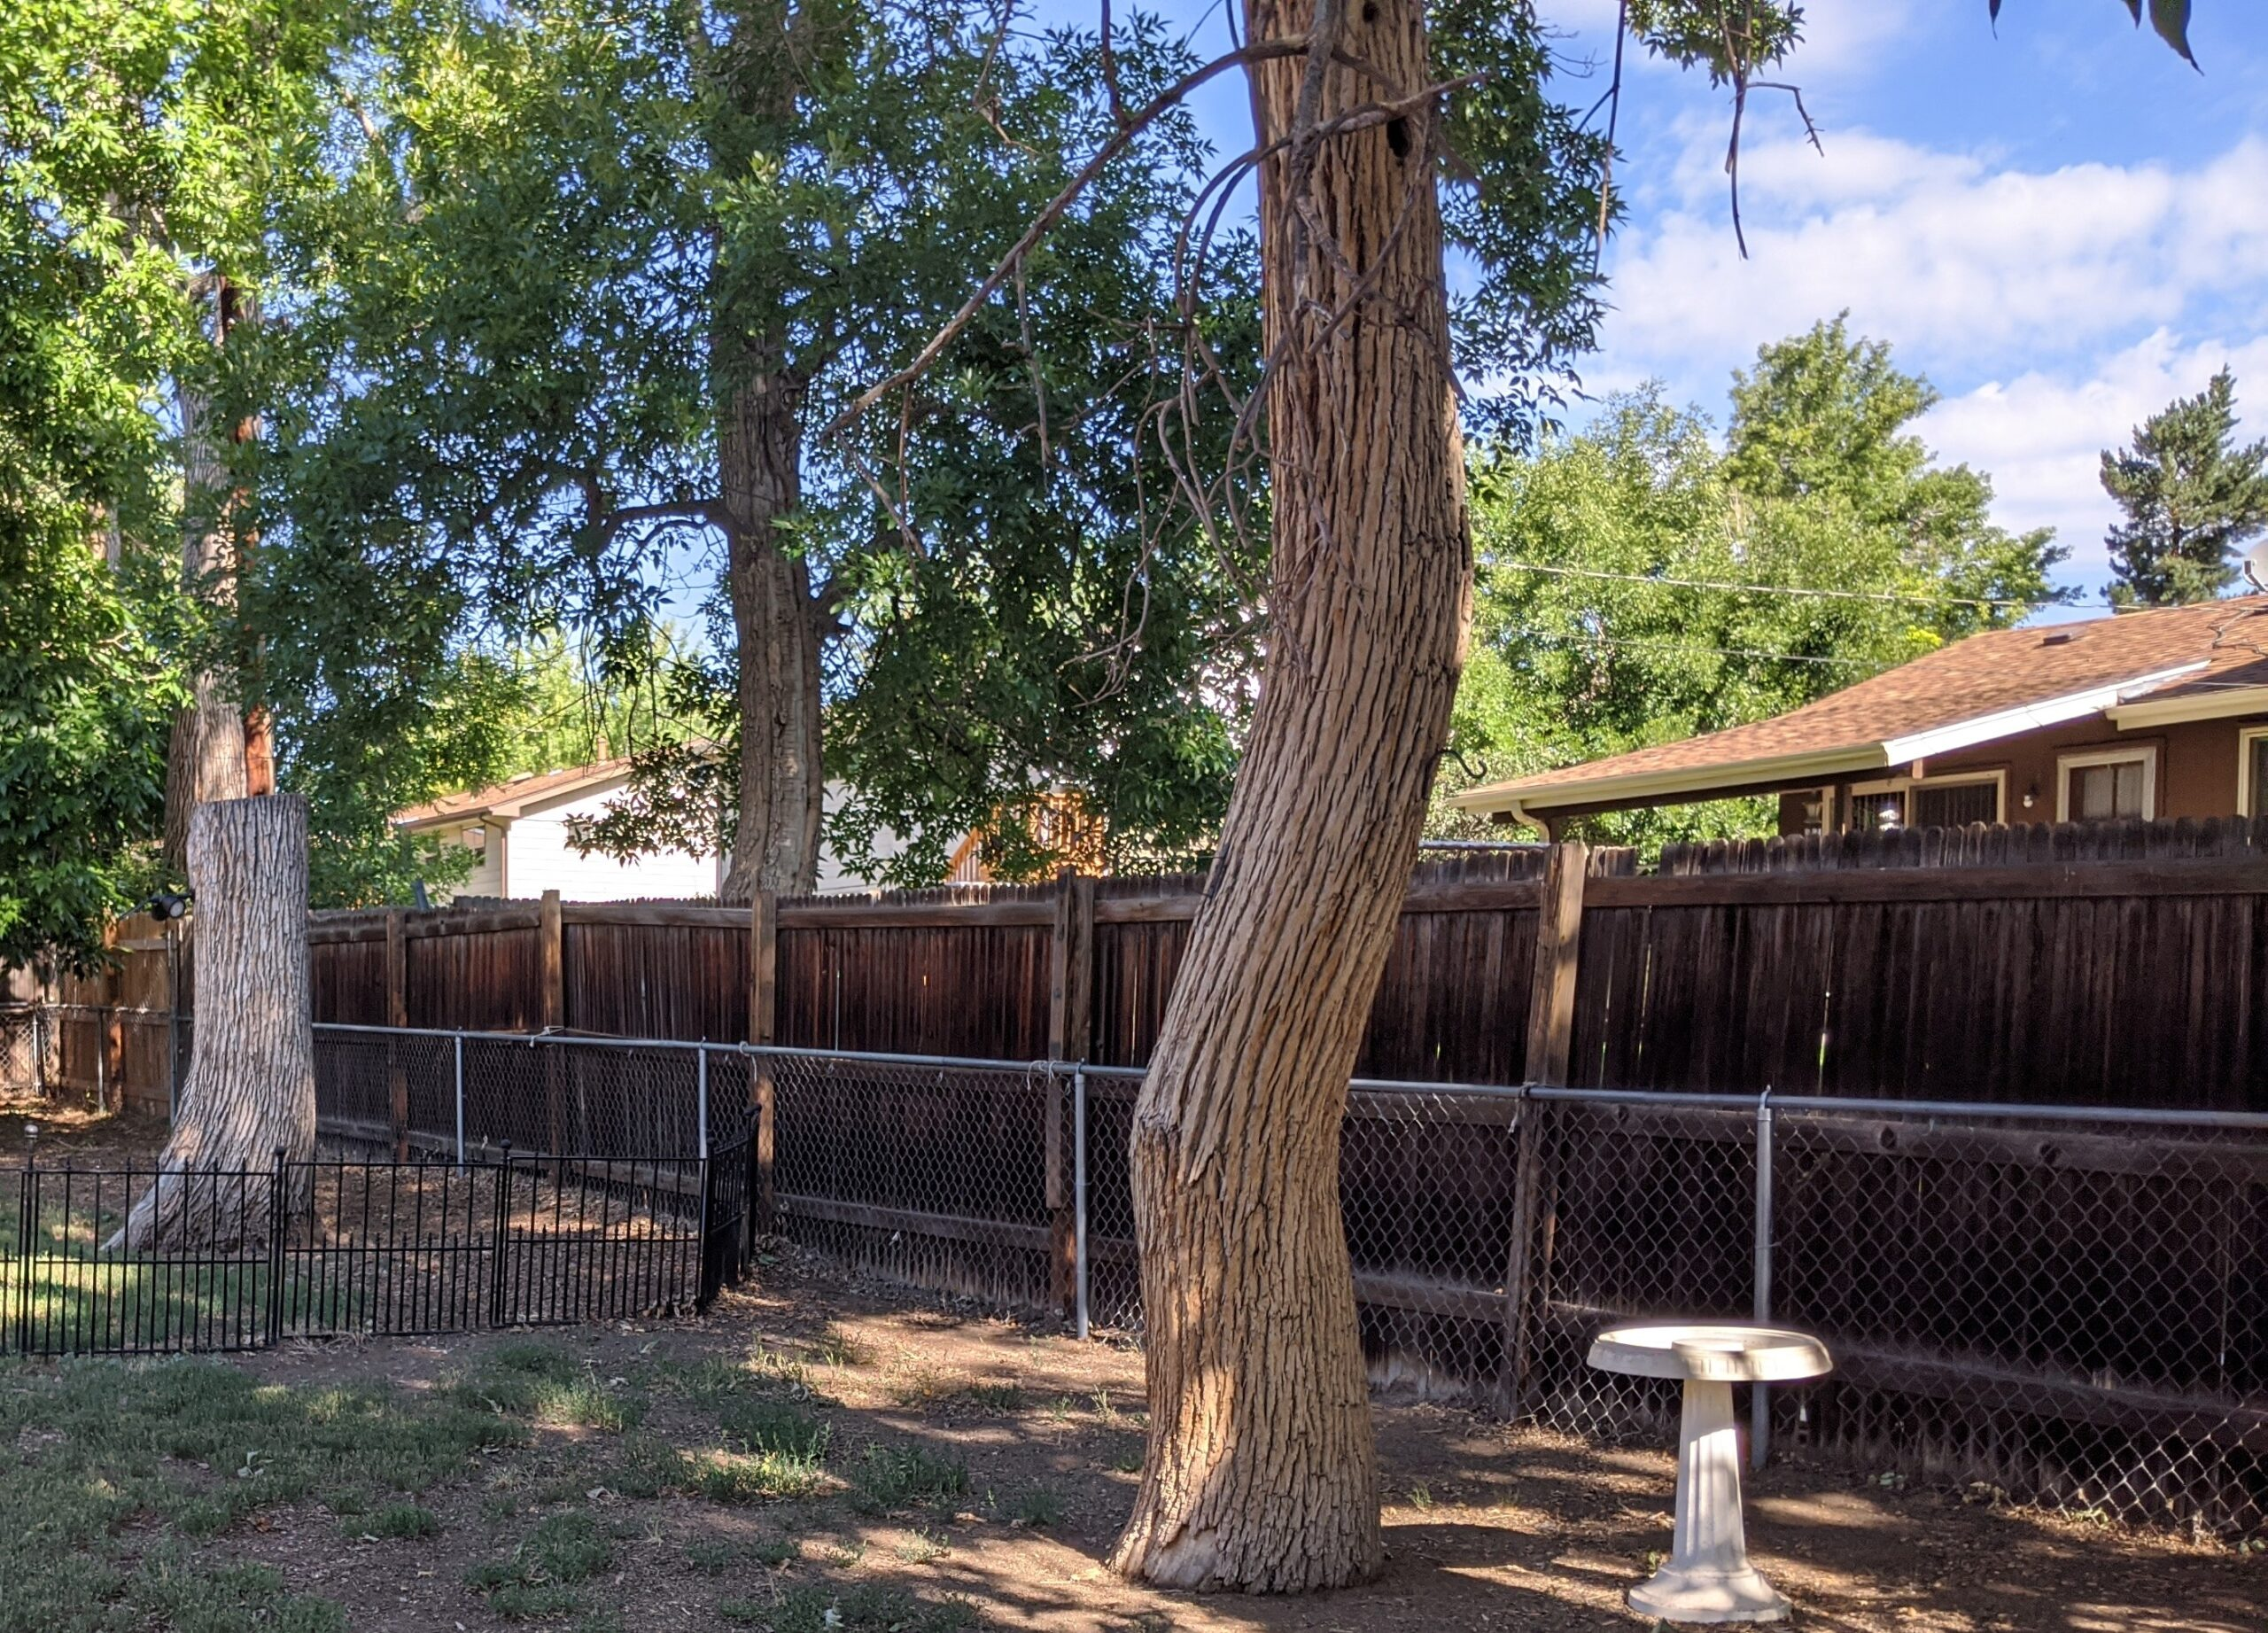 We wanted to get rid of this 10' tree stump and 40' tall dead tree, but they weren't a top priority on our list of projects.